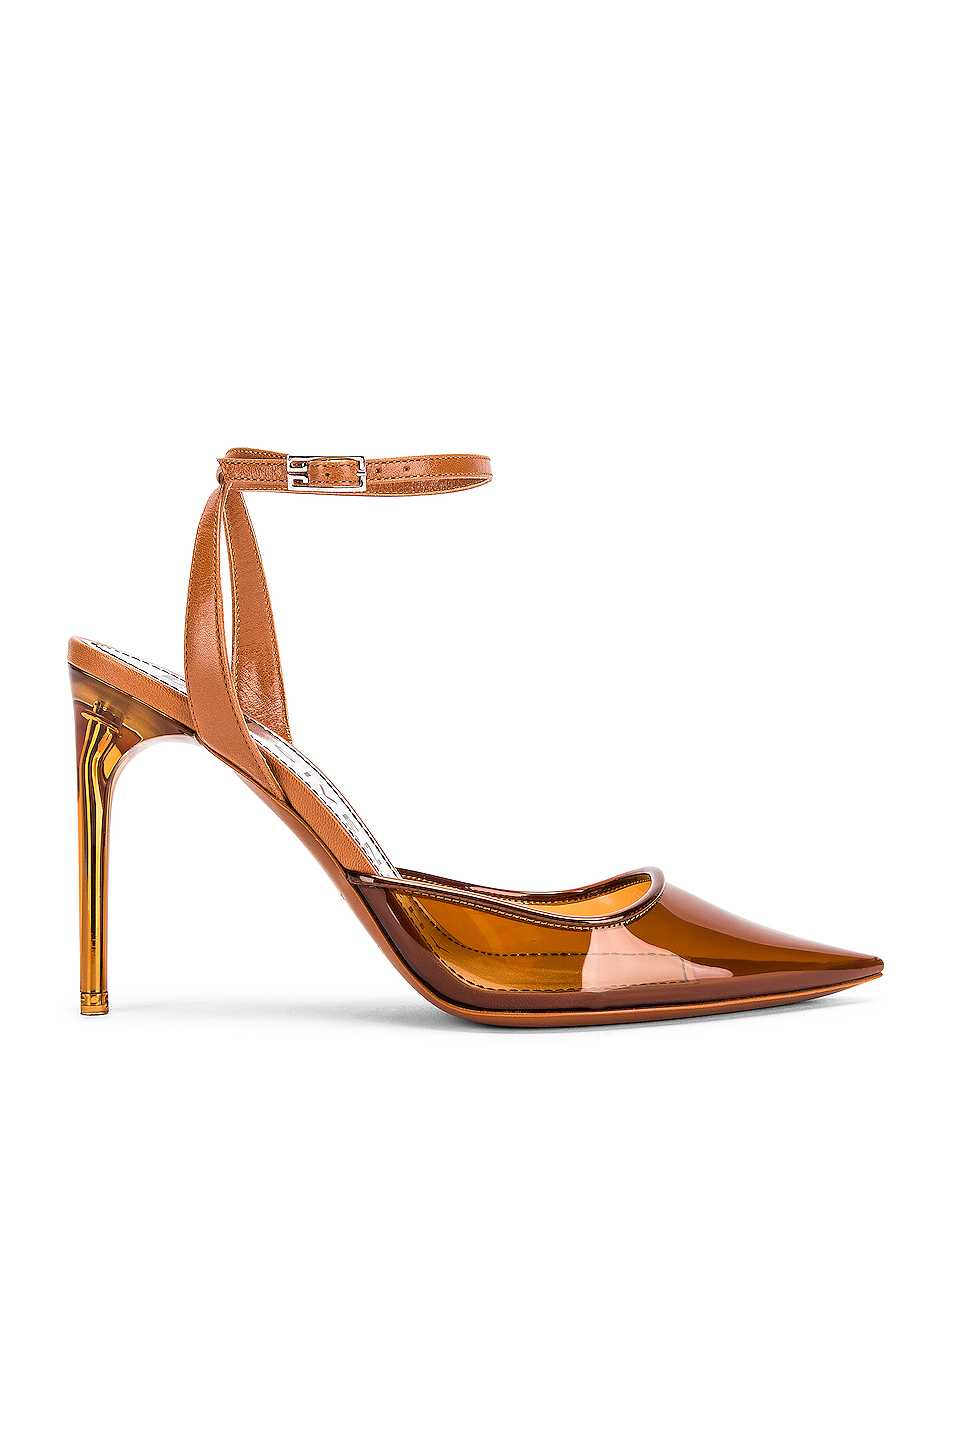 Couture Stiletto Ankle Strap Heels by Givenchy Kylie Jenner Shoes Exact Product